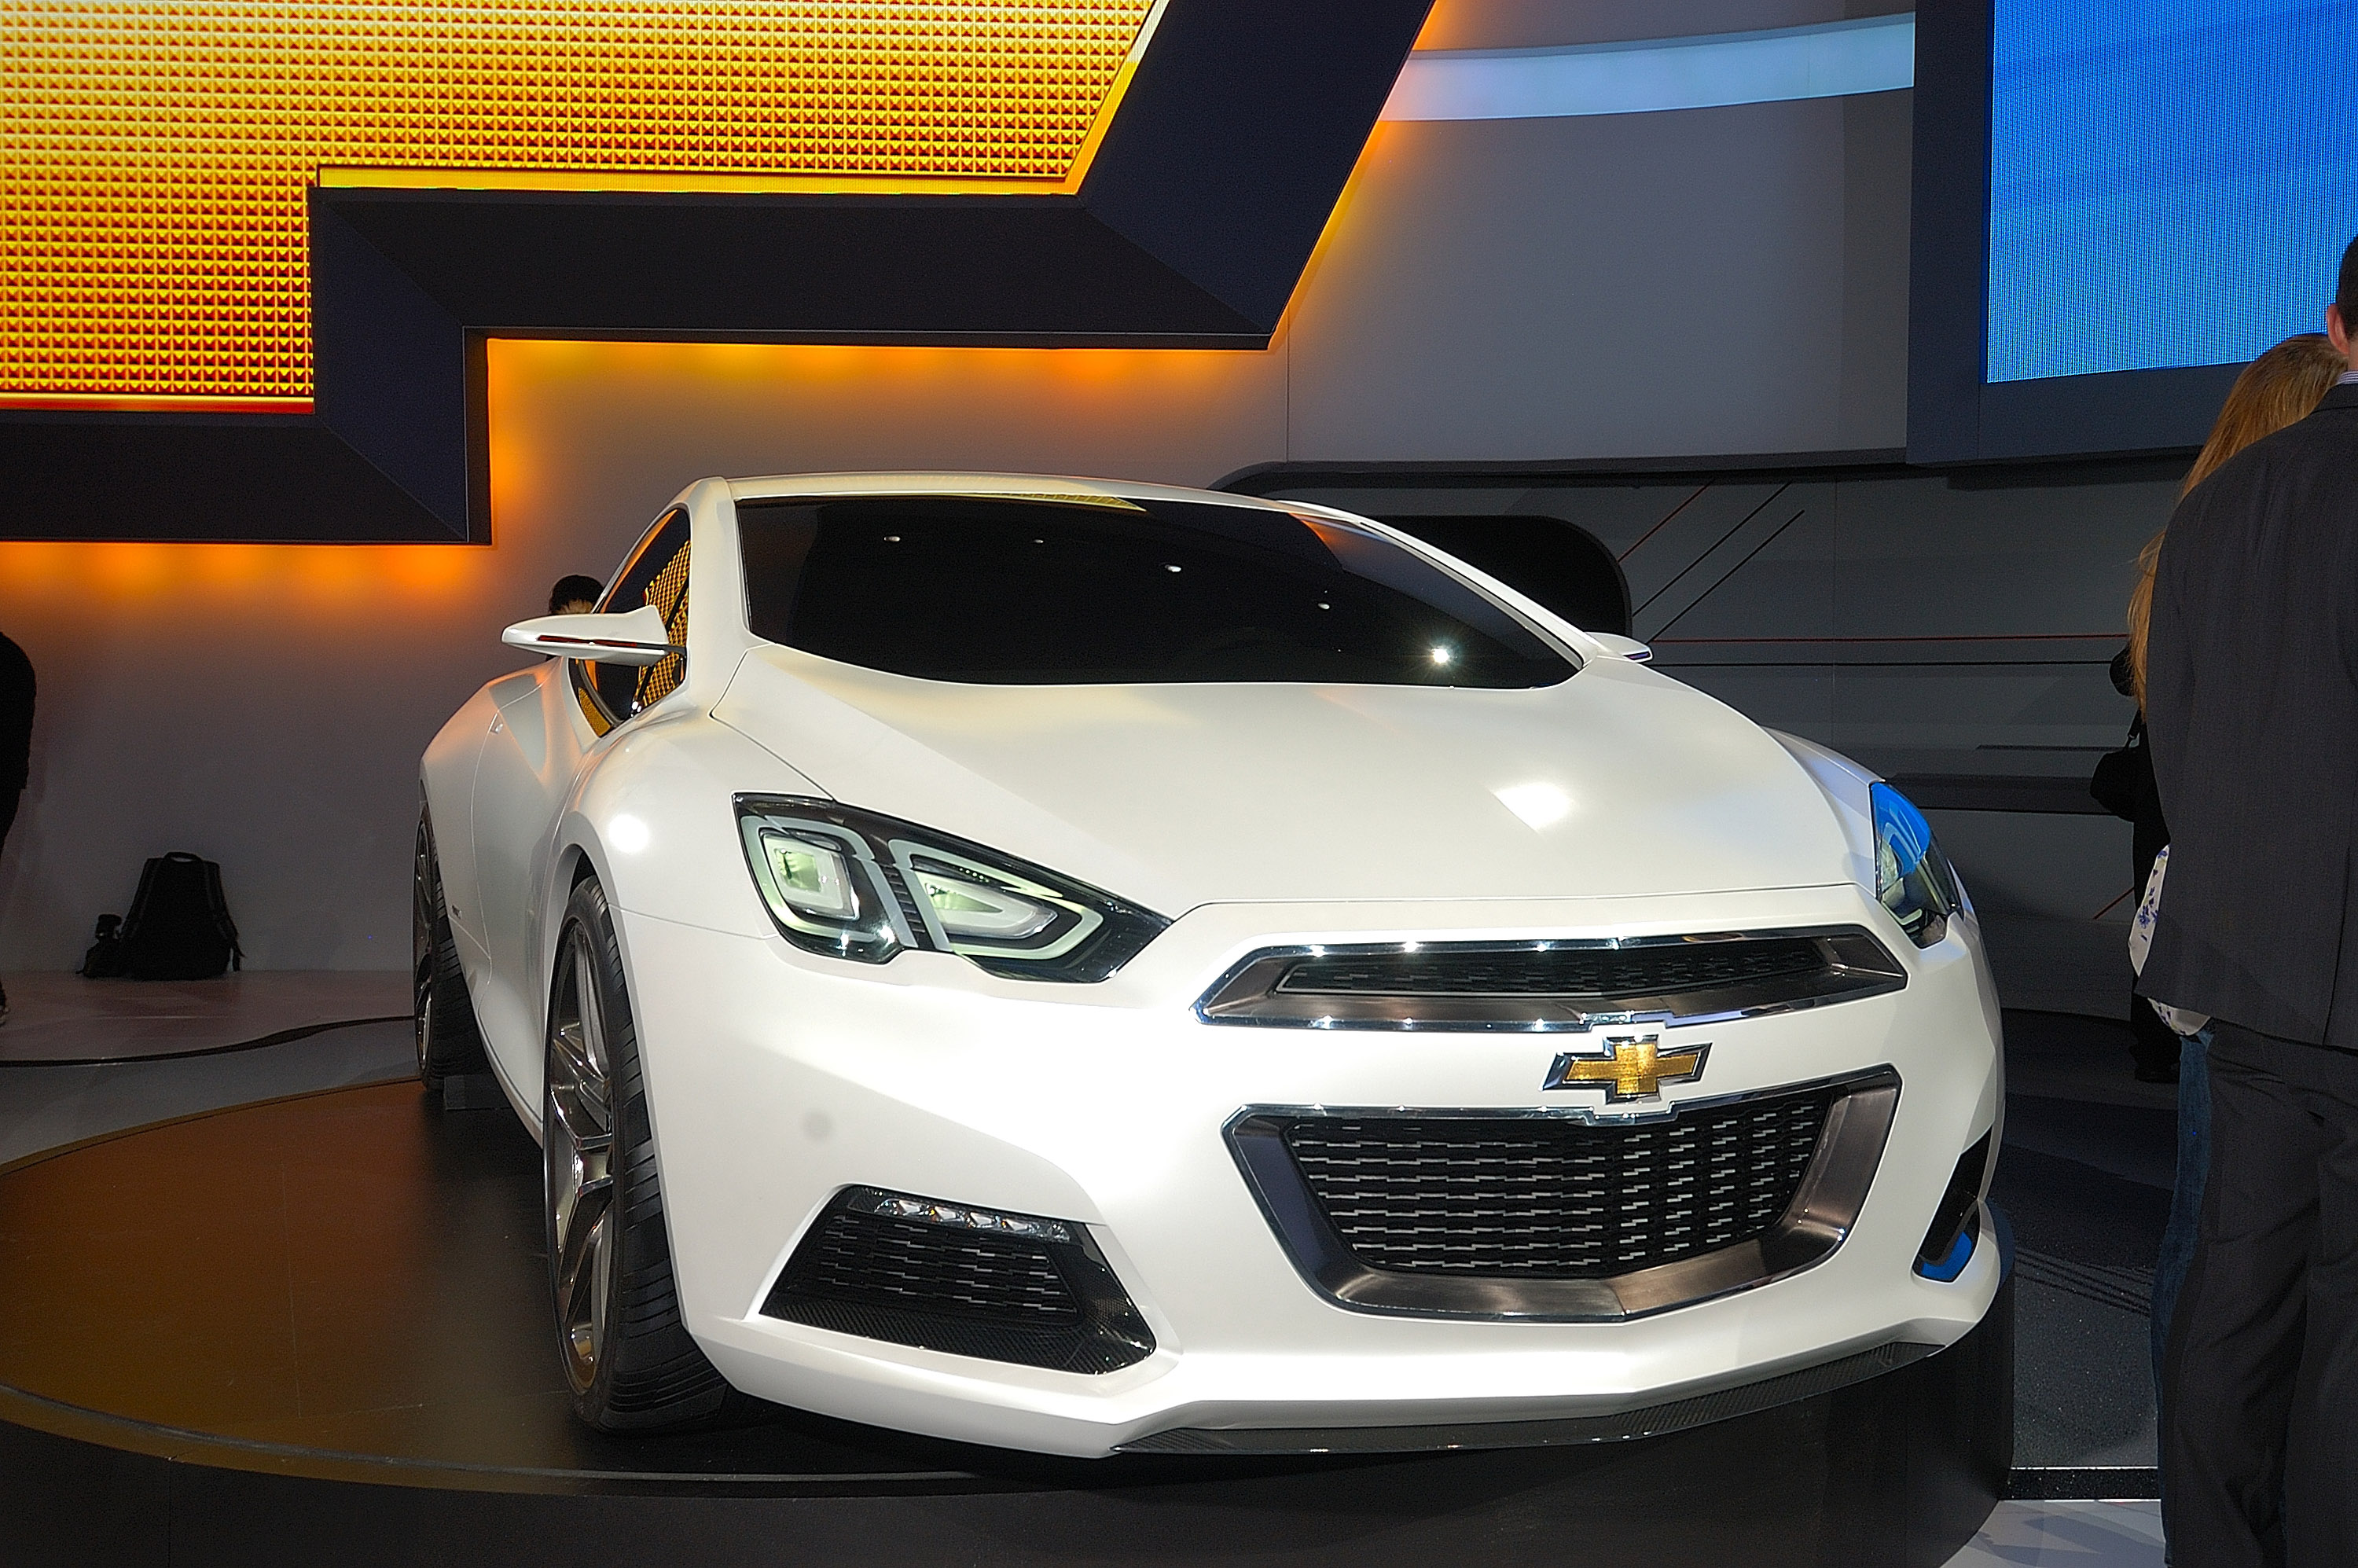 chevrolet code 130r and chevrolet tru 140s concepts